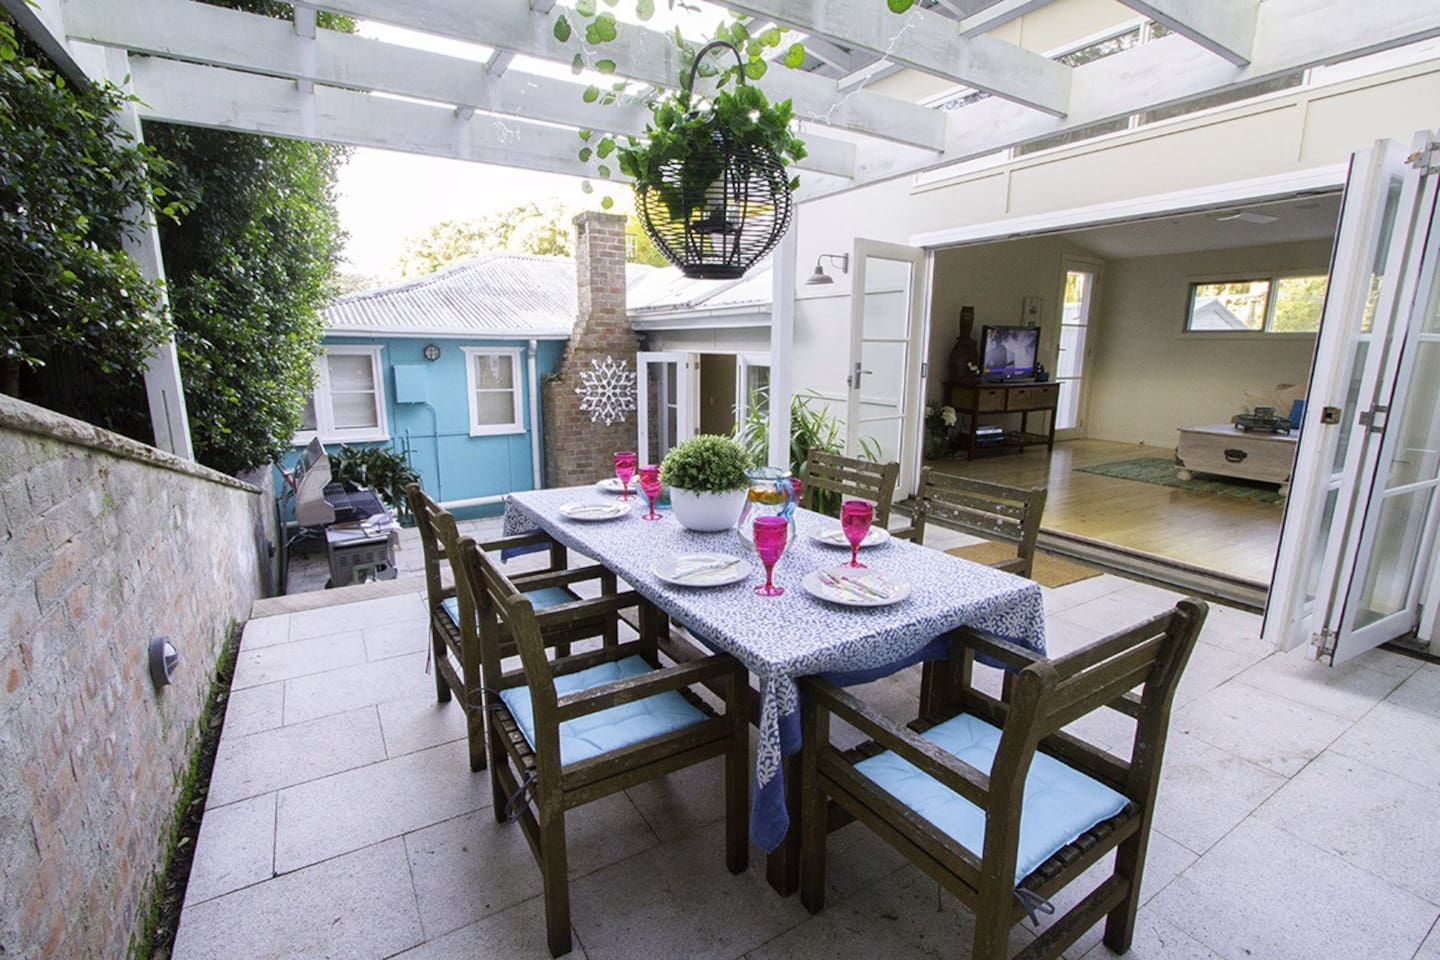 Enjoy the lovely courtyard and alfresco dining.